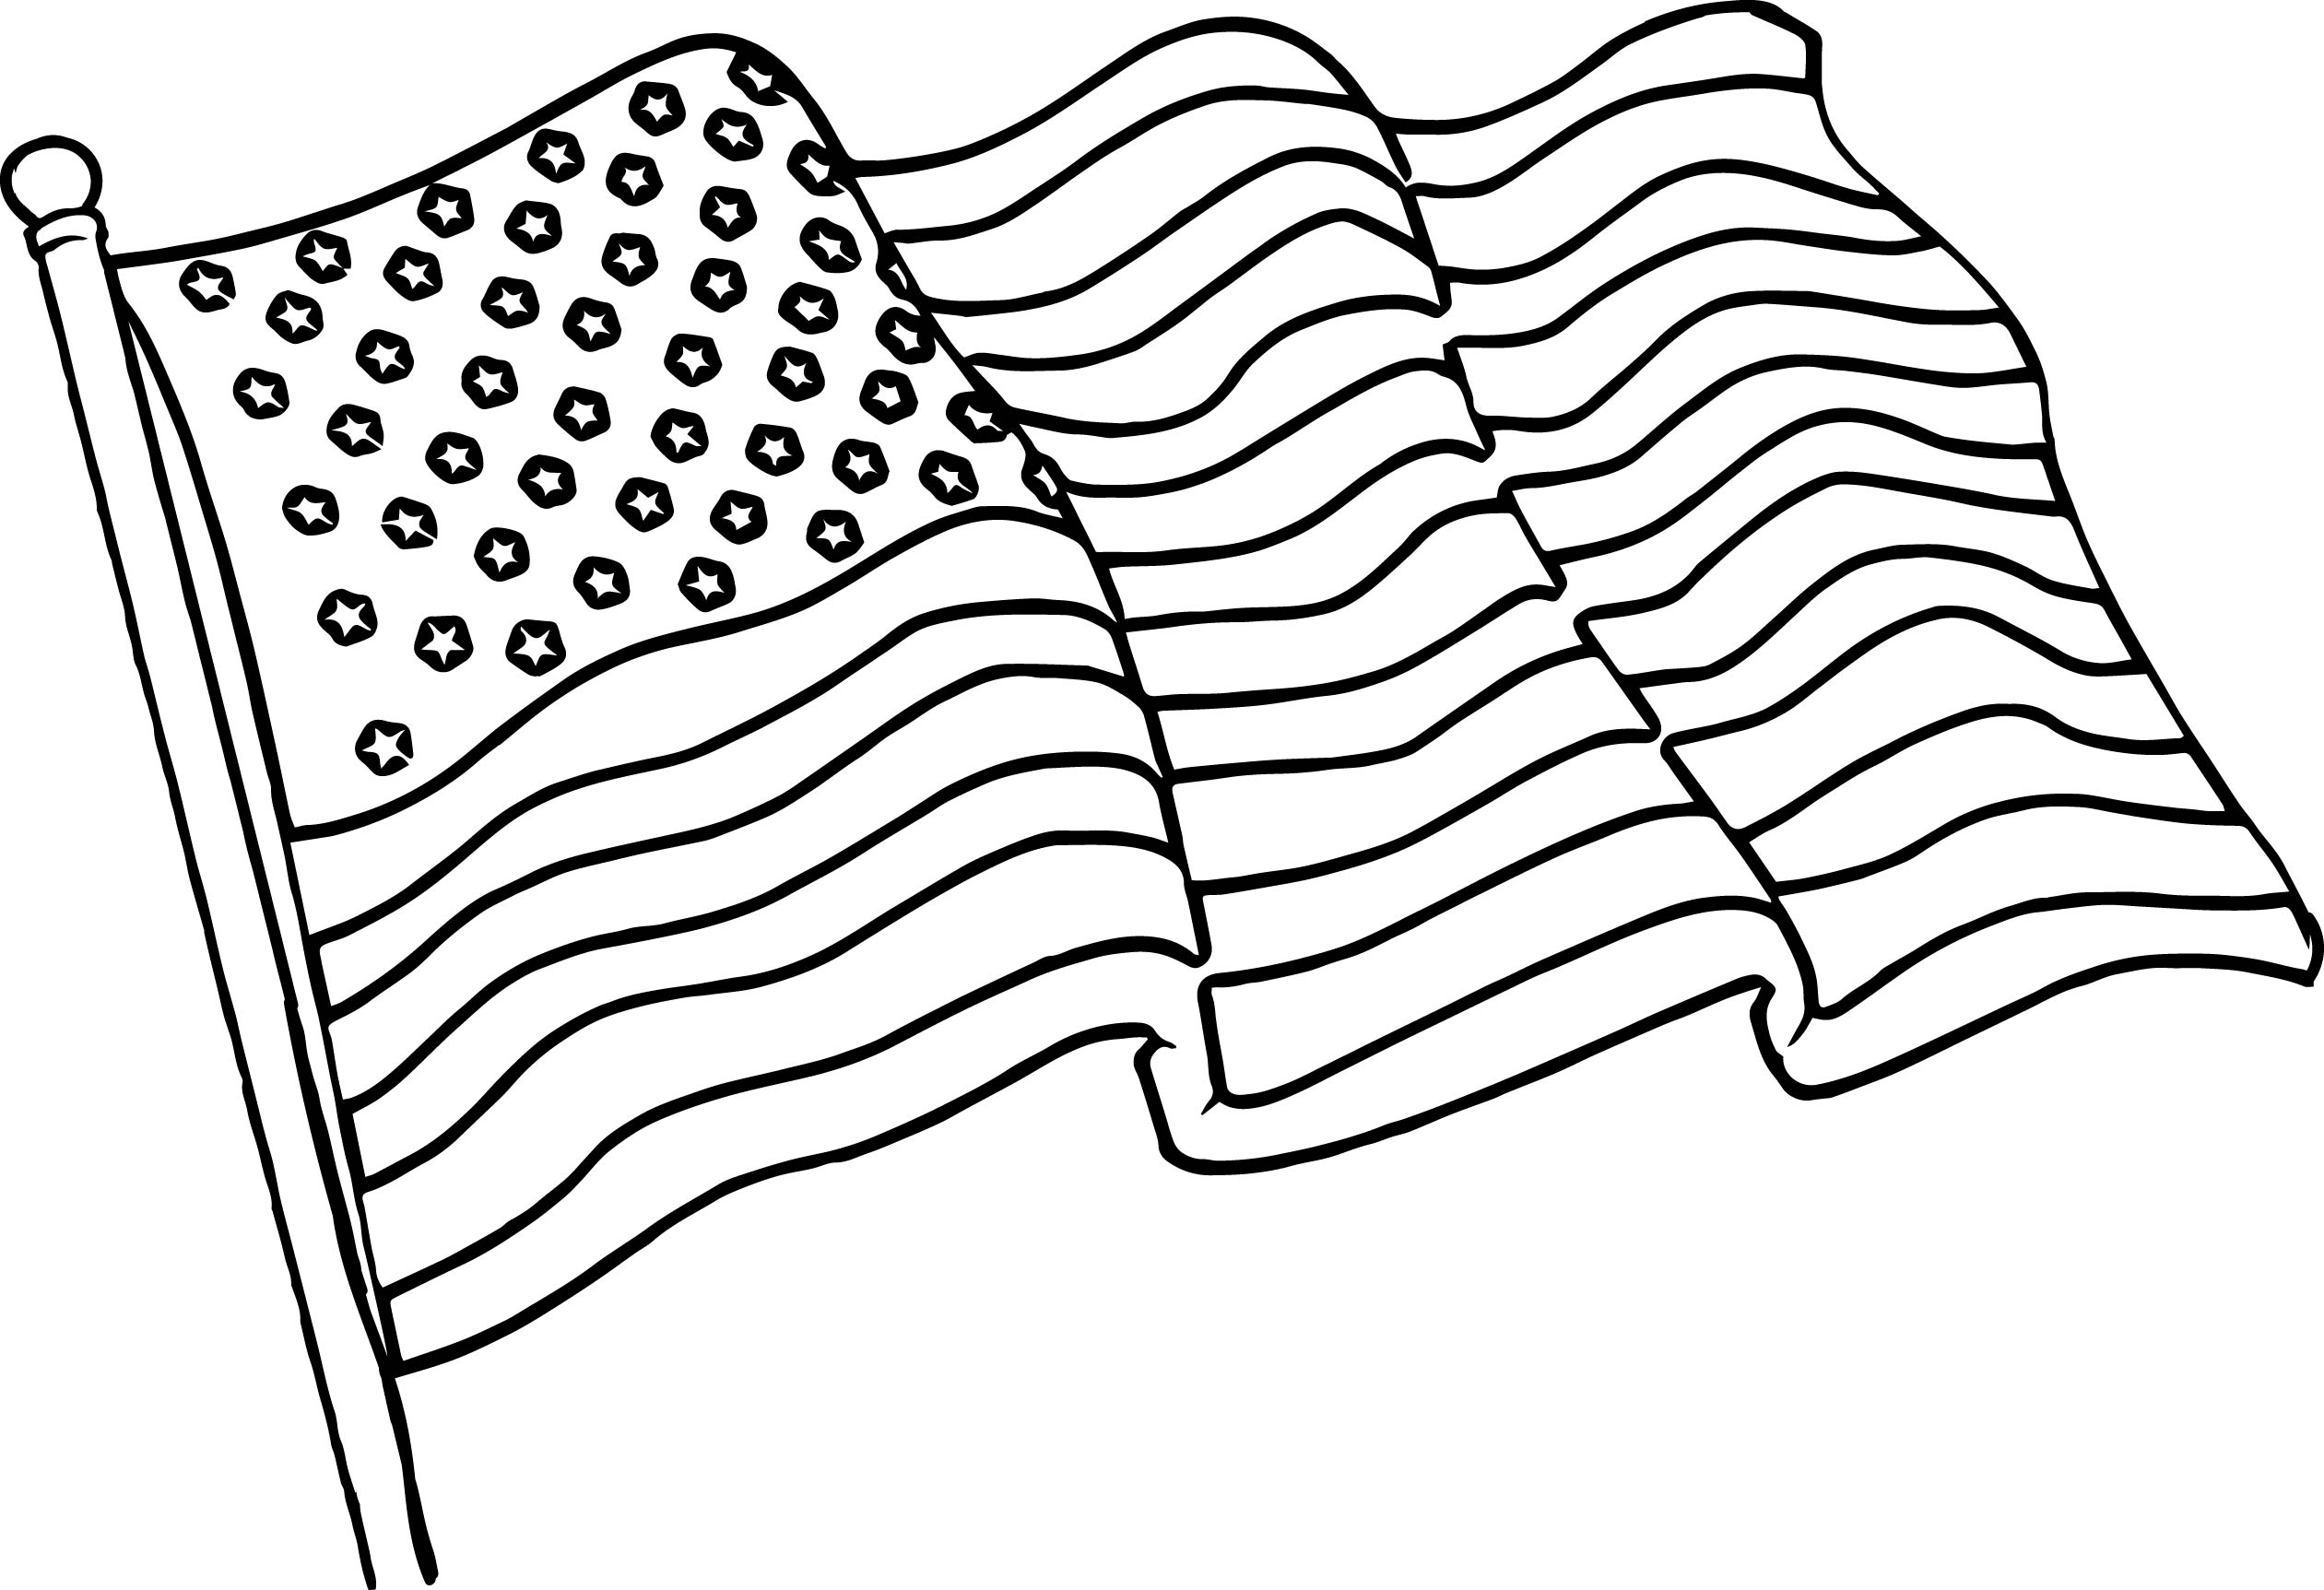 American Flag Drawing Black And White At Getdrawings